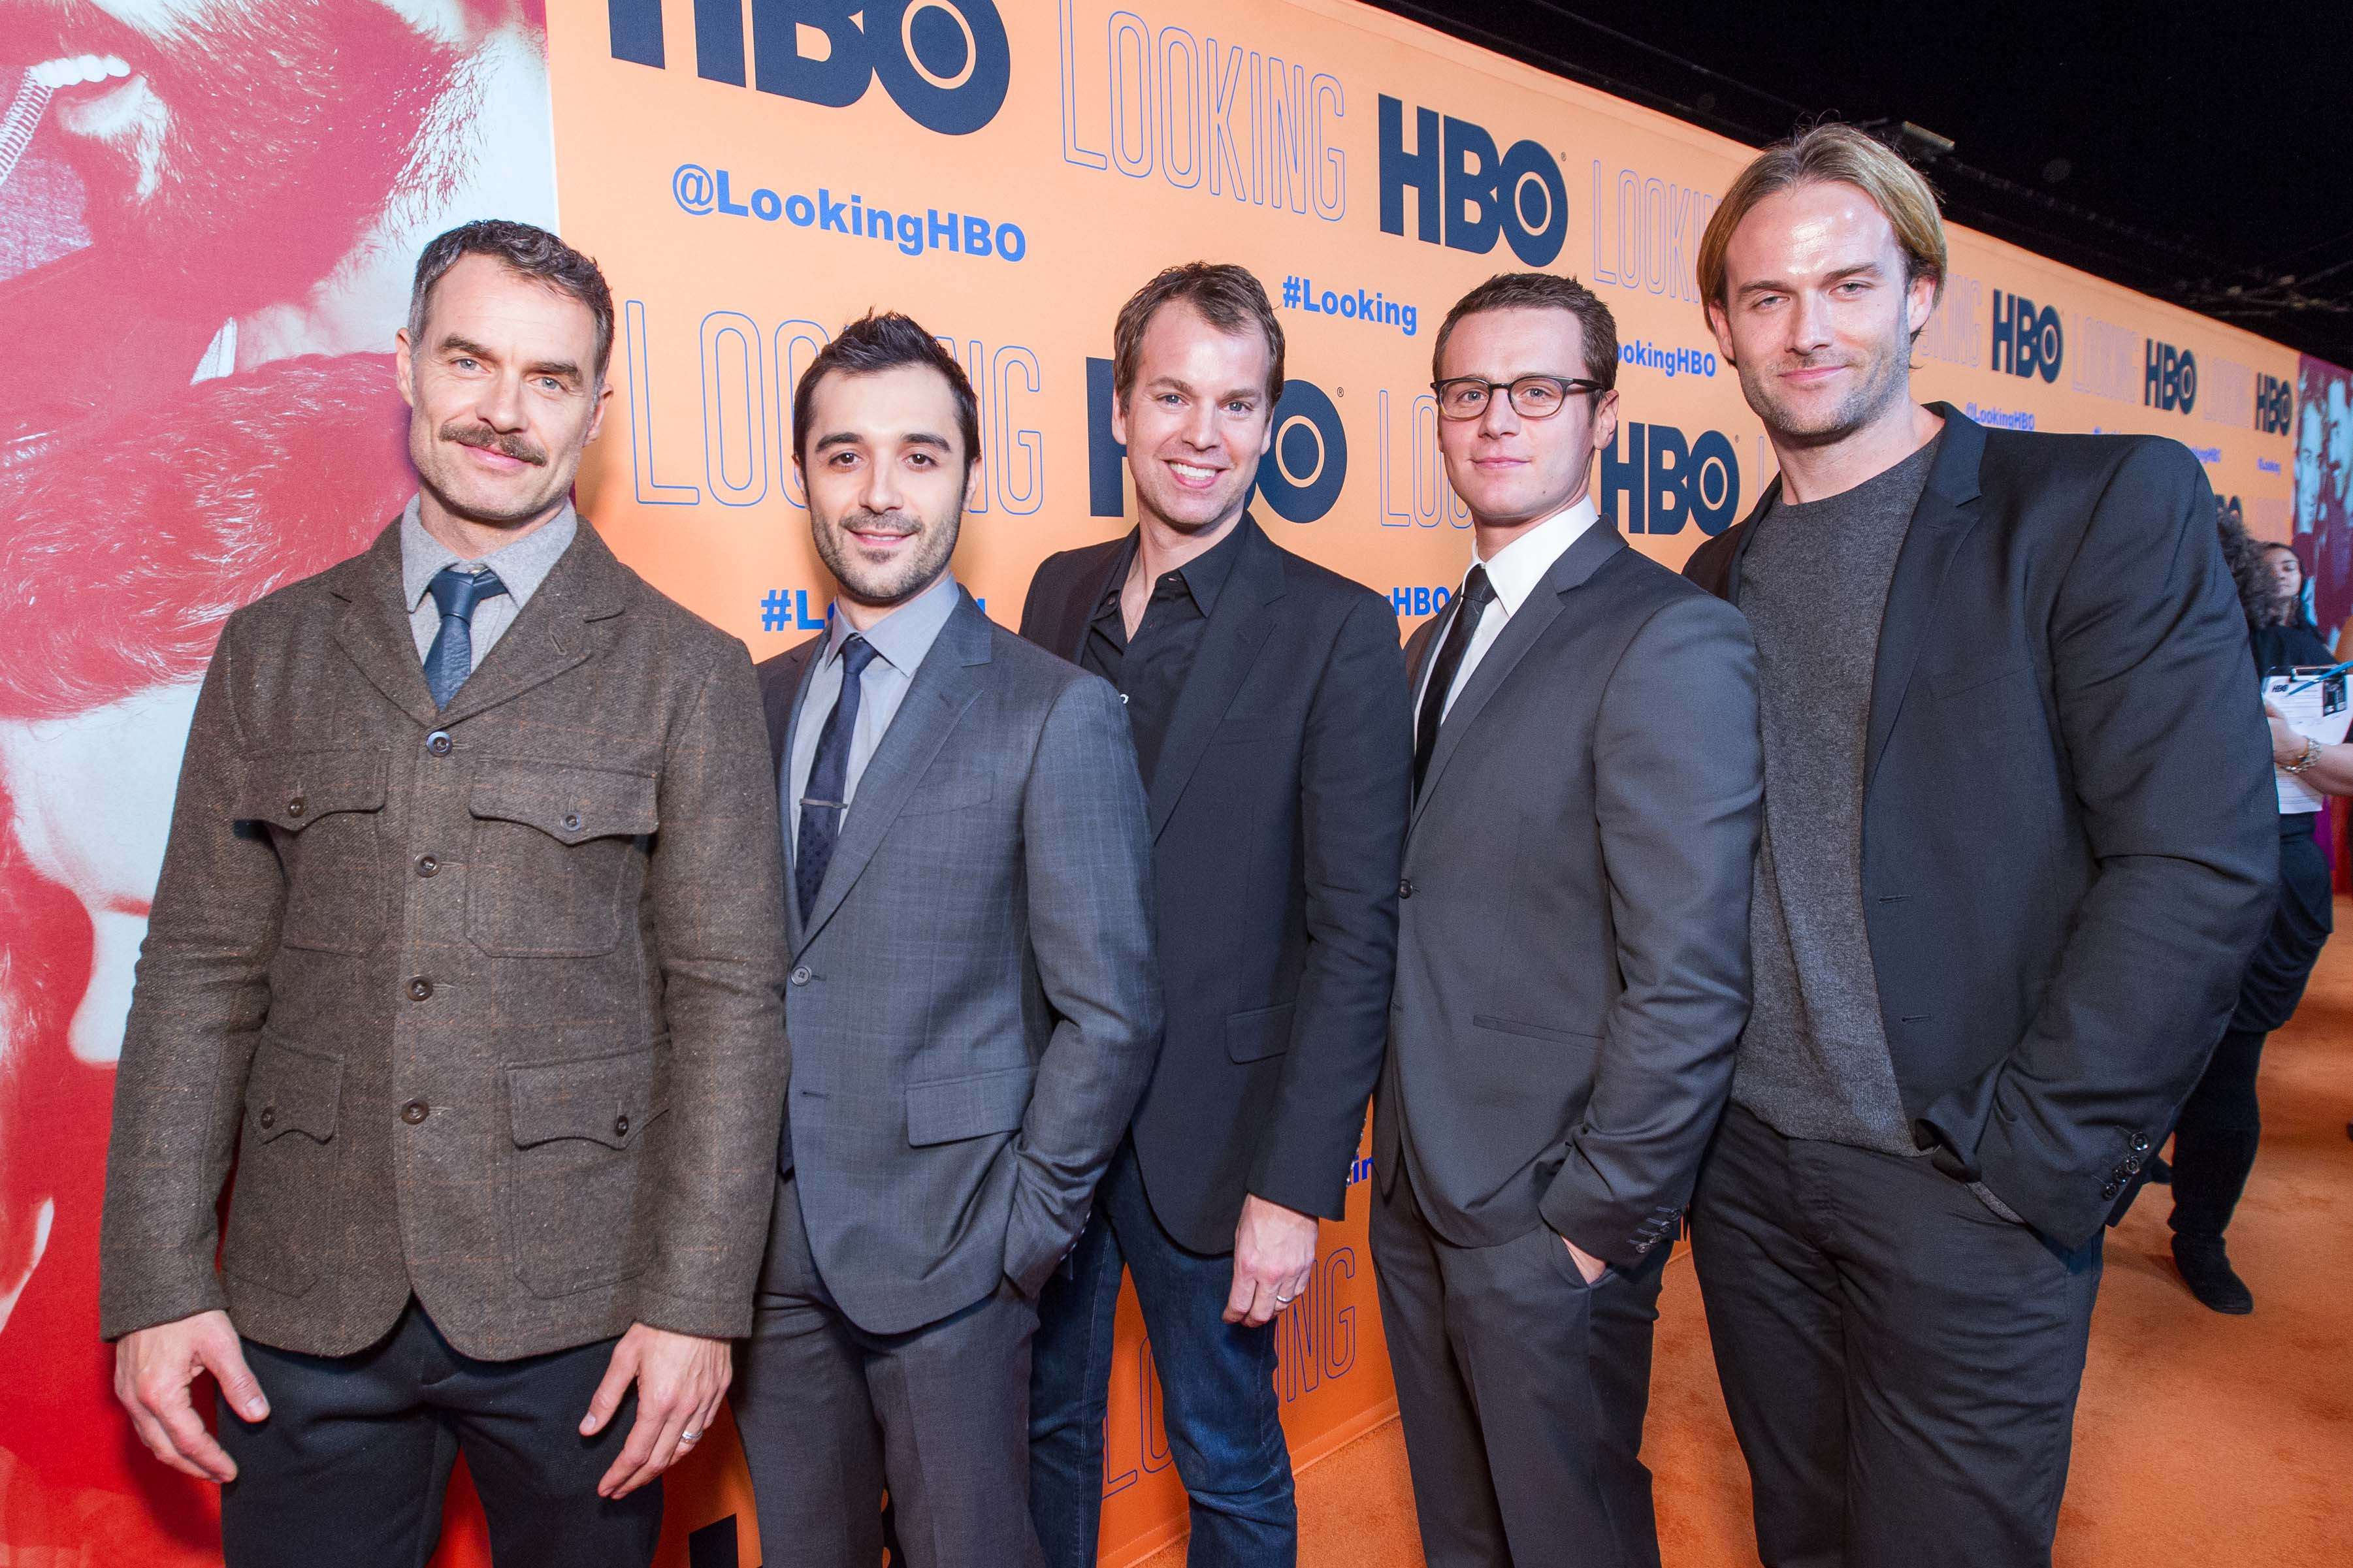 Murray Bartlett, Frankie J. Alvarez, Casey Bloys, Jonathan Groff, Nick Hall